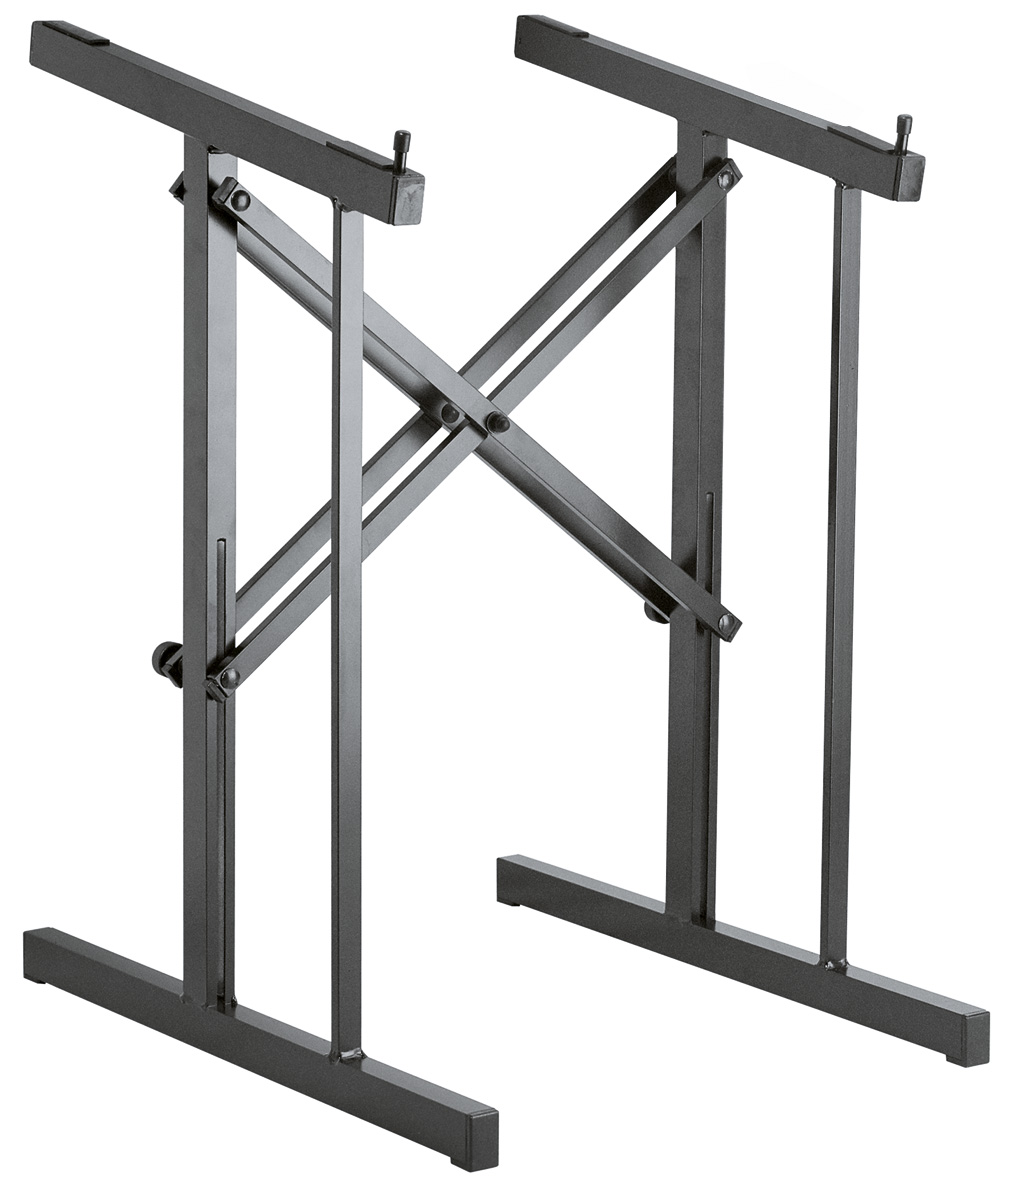 K&M 42040 Mixer Stand sort